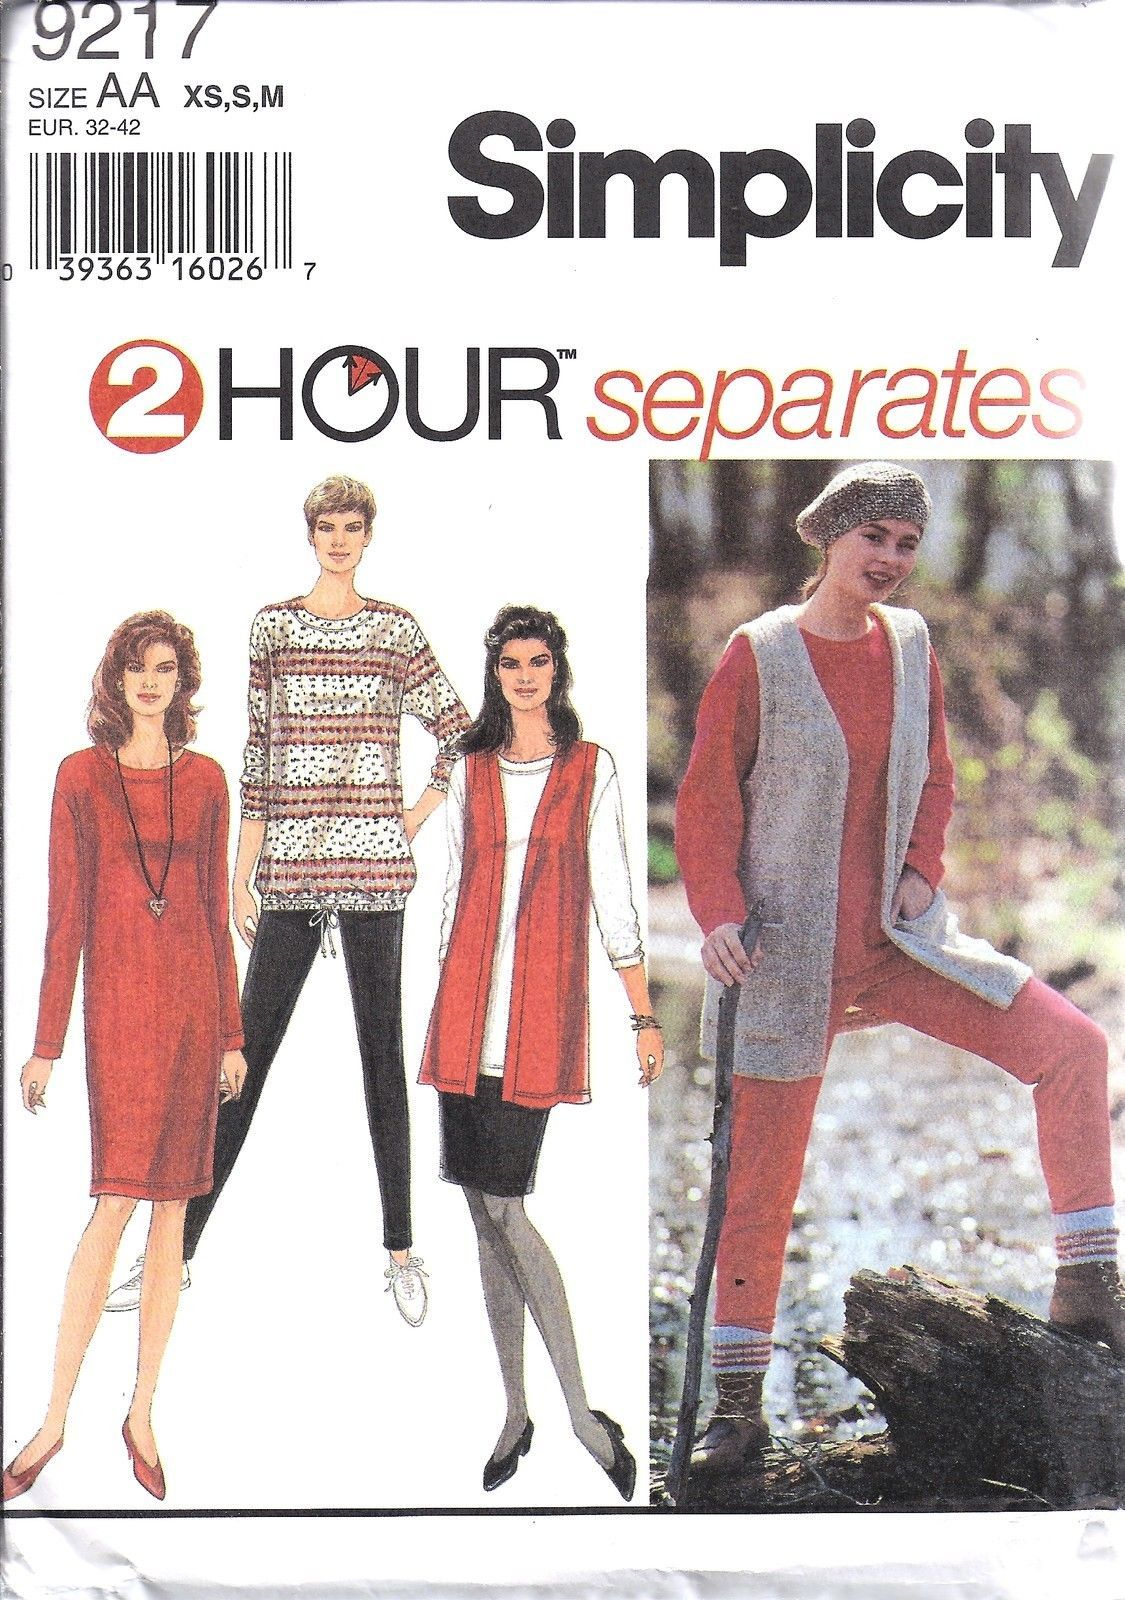 9217 Simplicity Vintage SEWING Pattern 2 Hour Separates Knit Pants Skirt OOP SEW